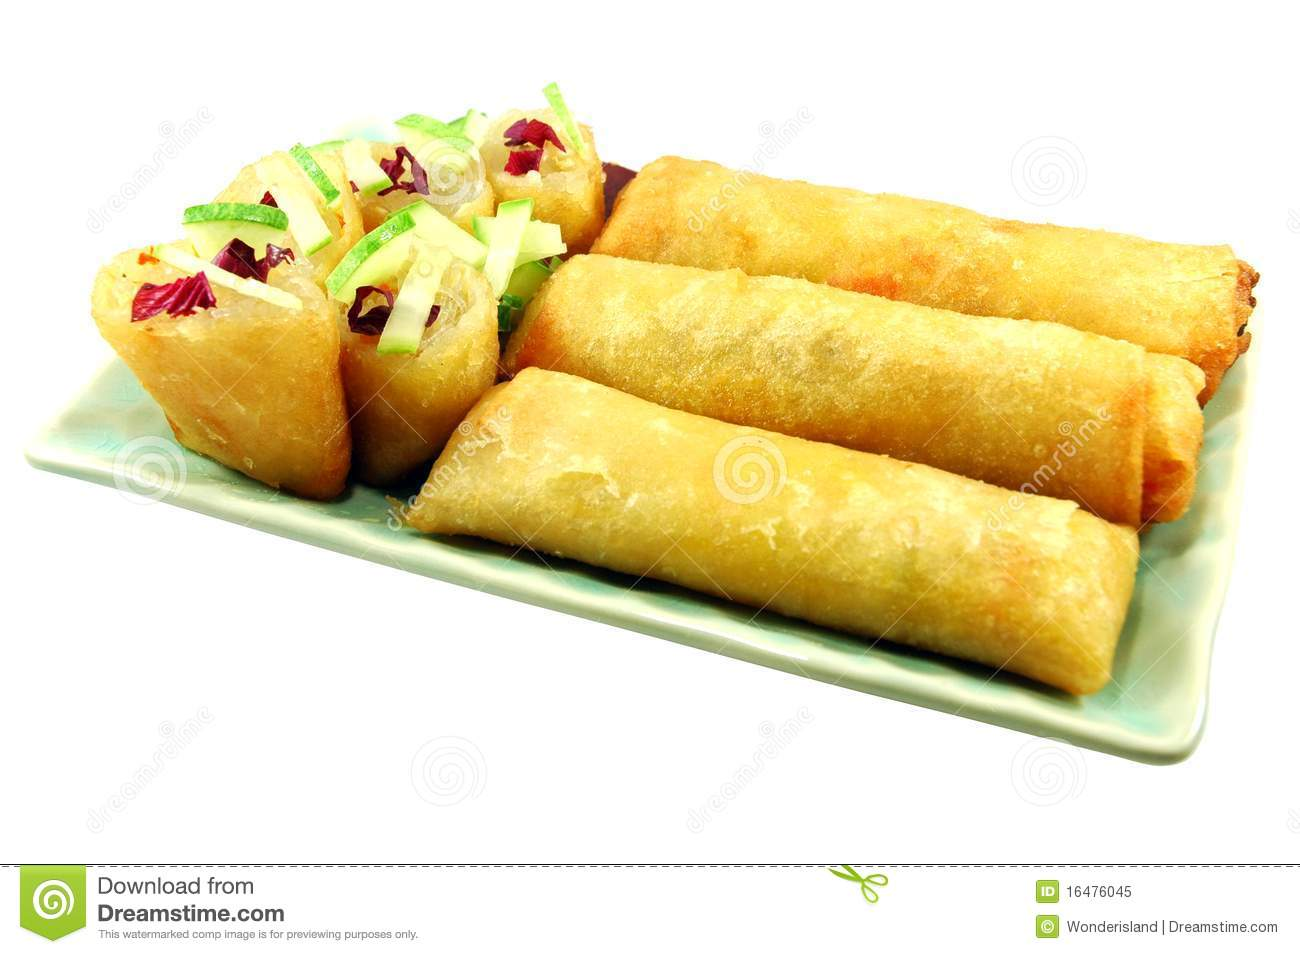 Fried Spring Rolls are usually found sold on the street in Thailand ...